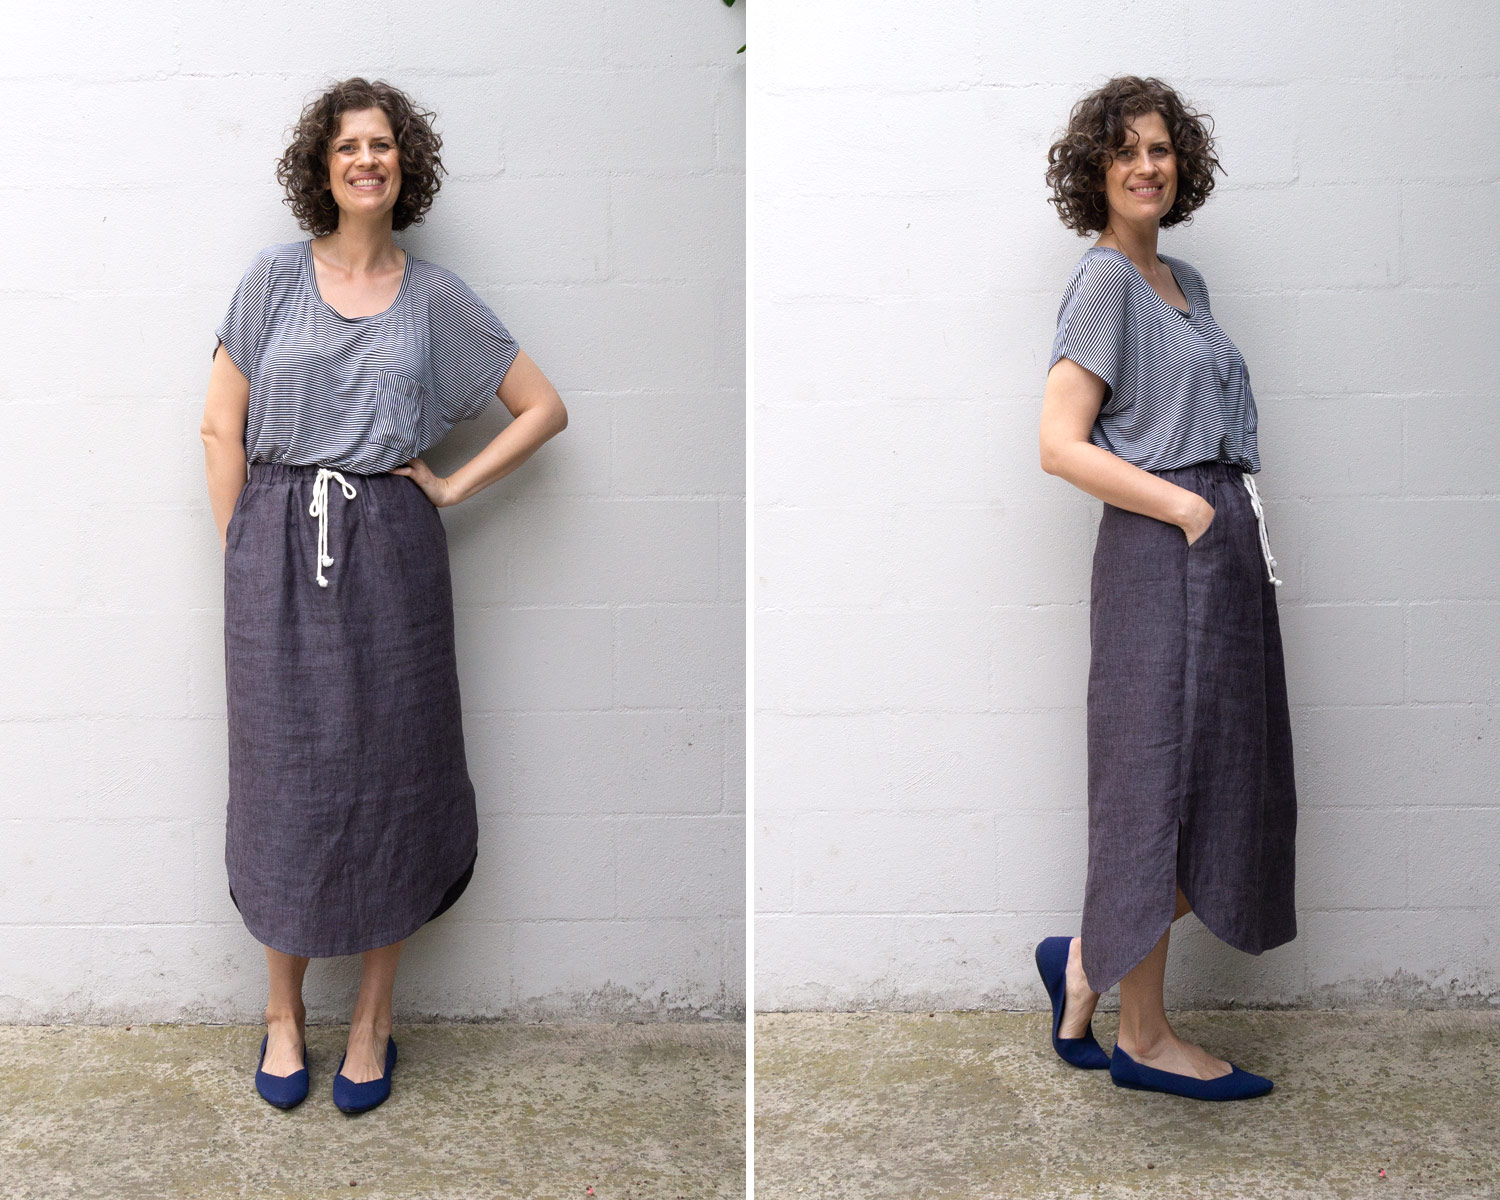 How to Style an Elastic Waist Skirt - Lou Box Top and Lela Skirt by Sew DIY